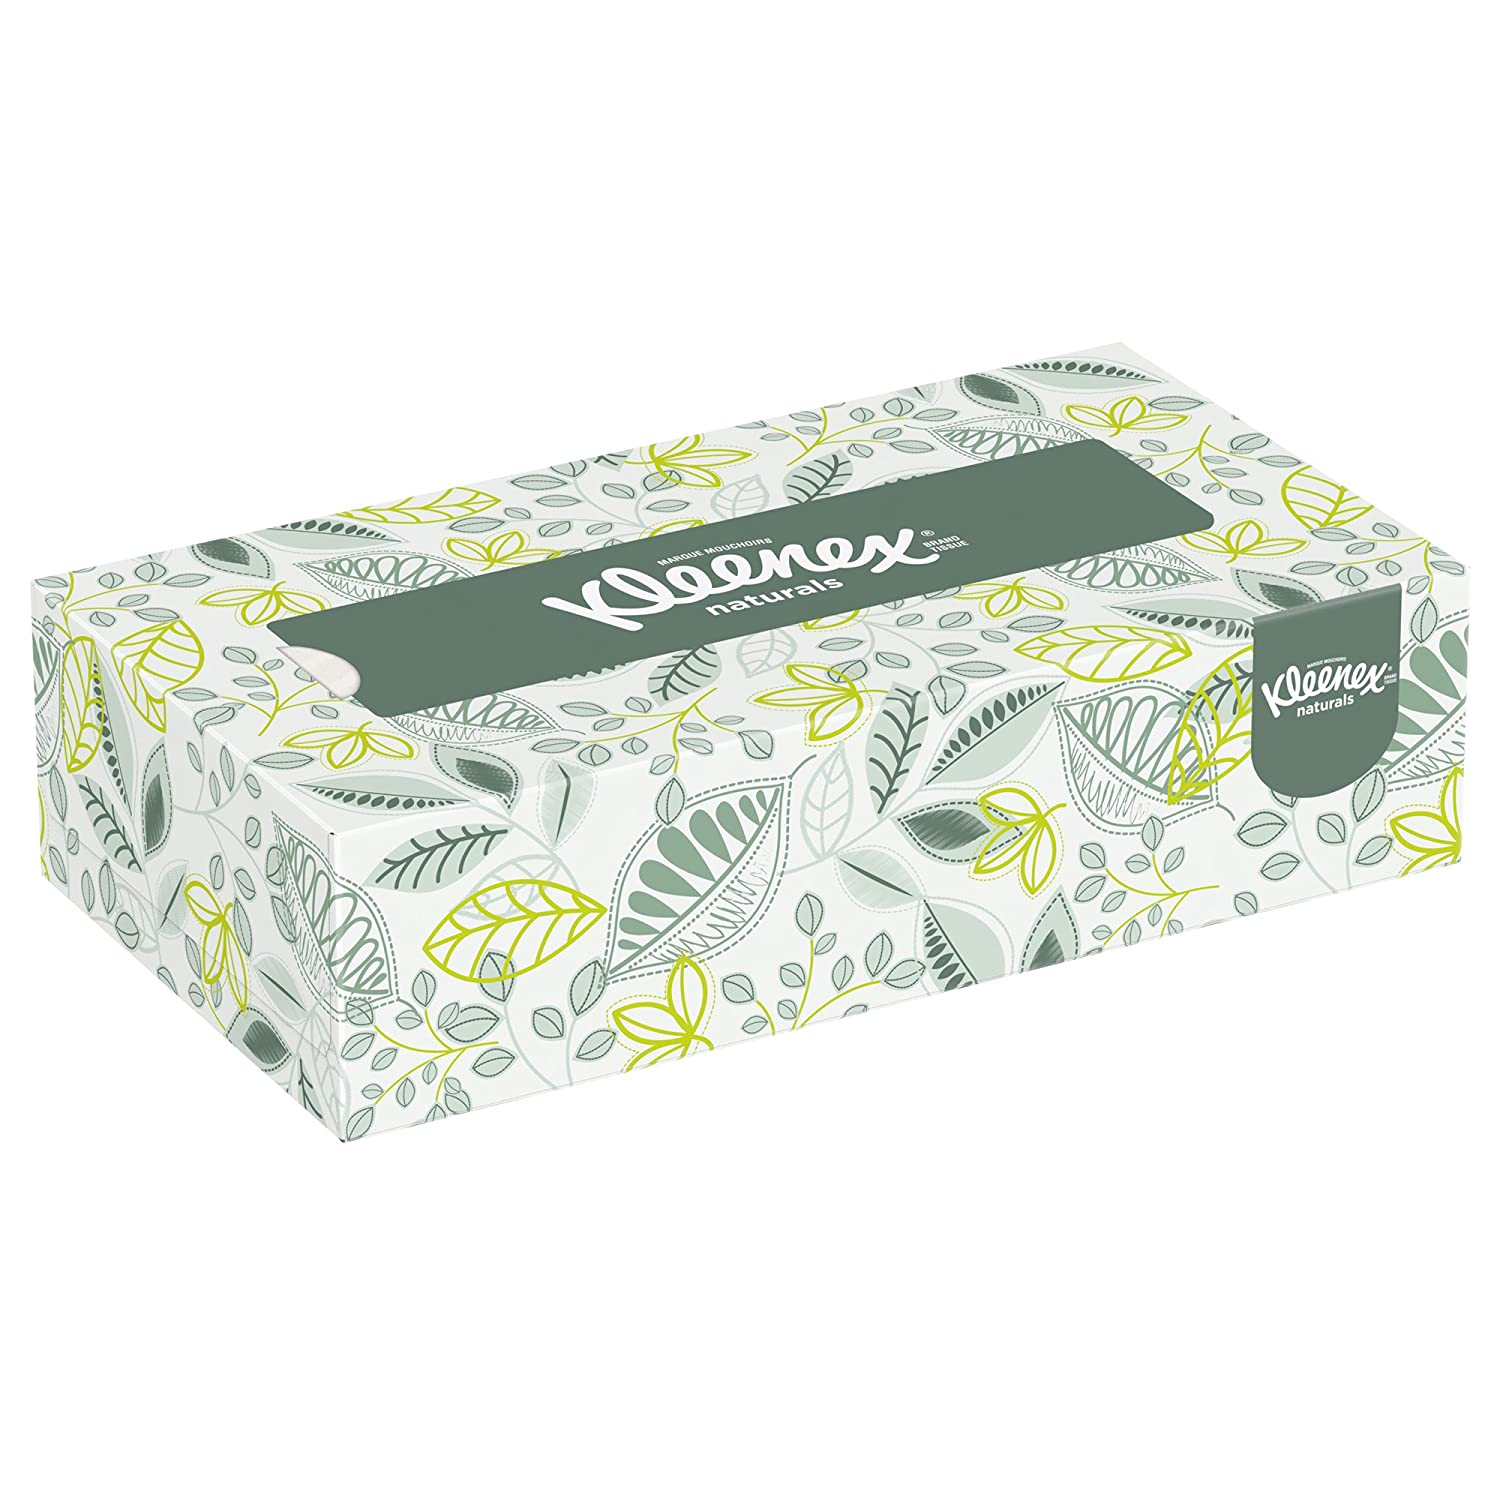 Kleenex 21601 Naturals Facial Tissue 2 Ply White 125 per Box Case of 48 Boxes